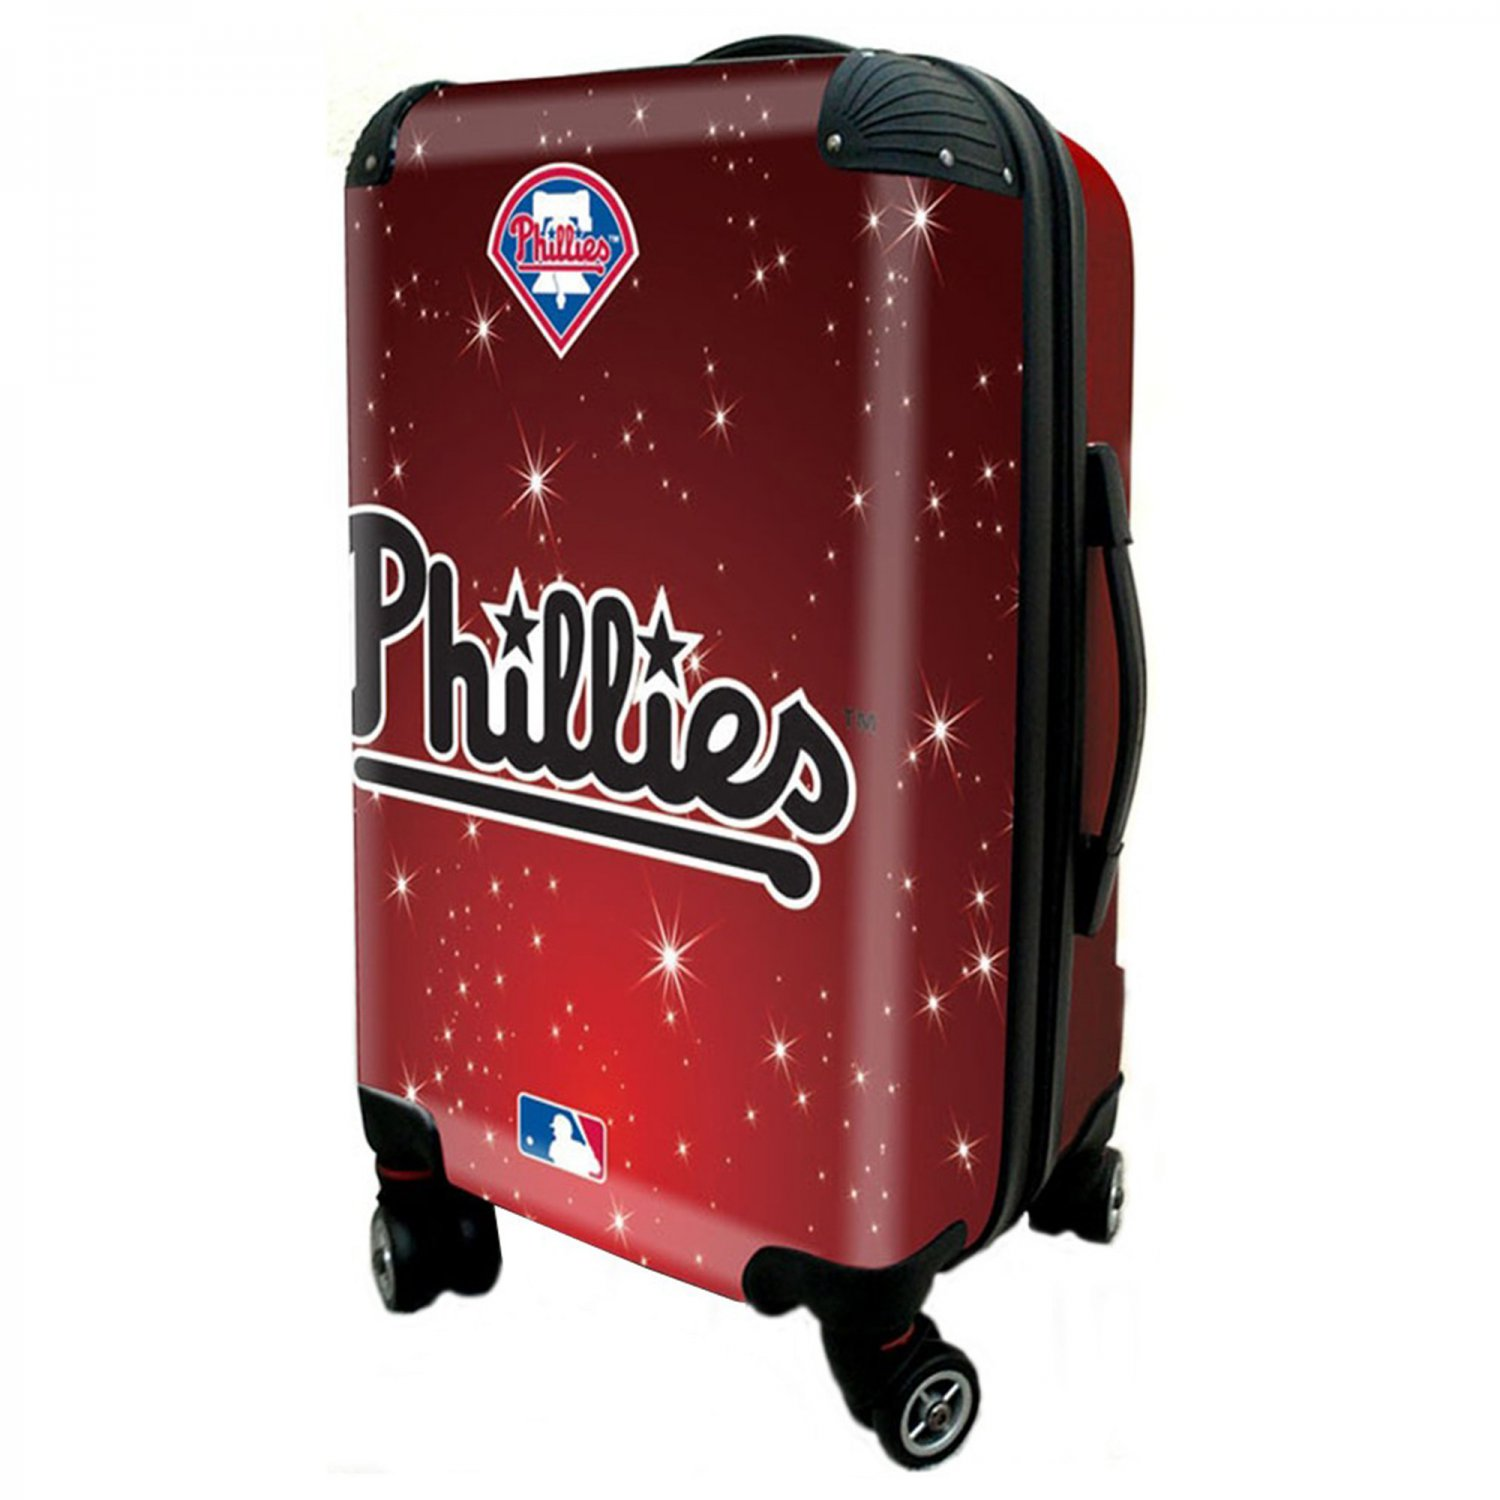 "Philadelphia Phillies, 21"" Clear Poly Carry-On Luggage by Kaybull #PHI8"